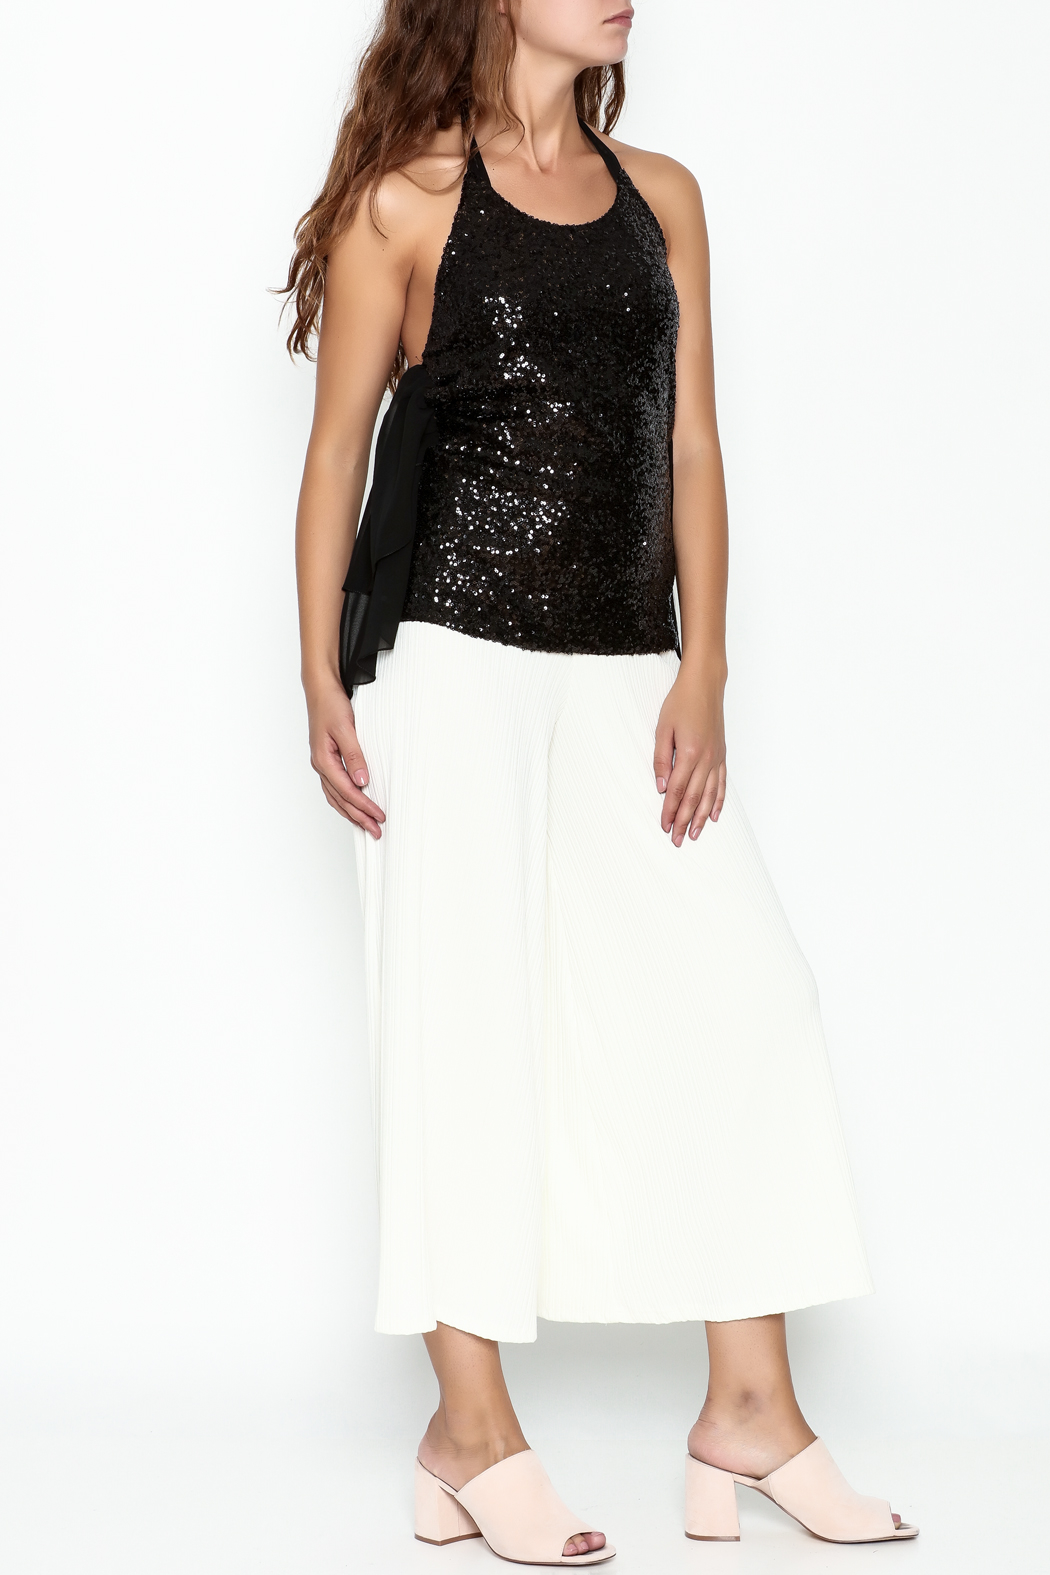 Marvy Fashion Sequined Halter Top - Side Cropped Image